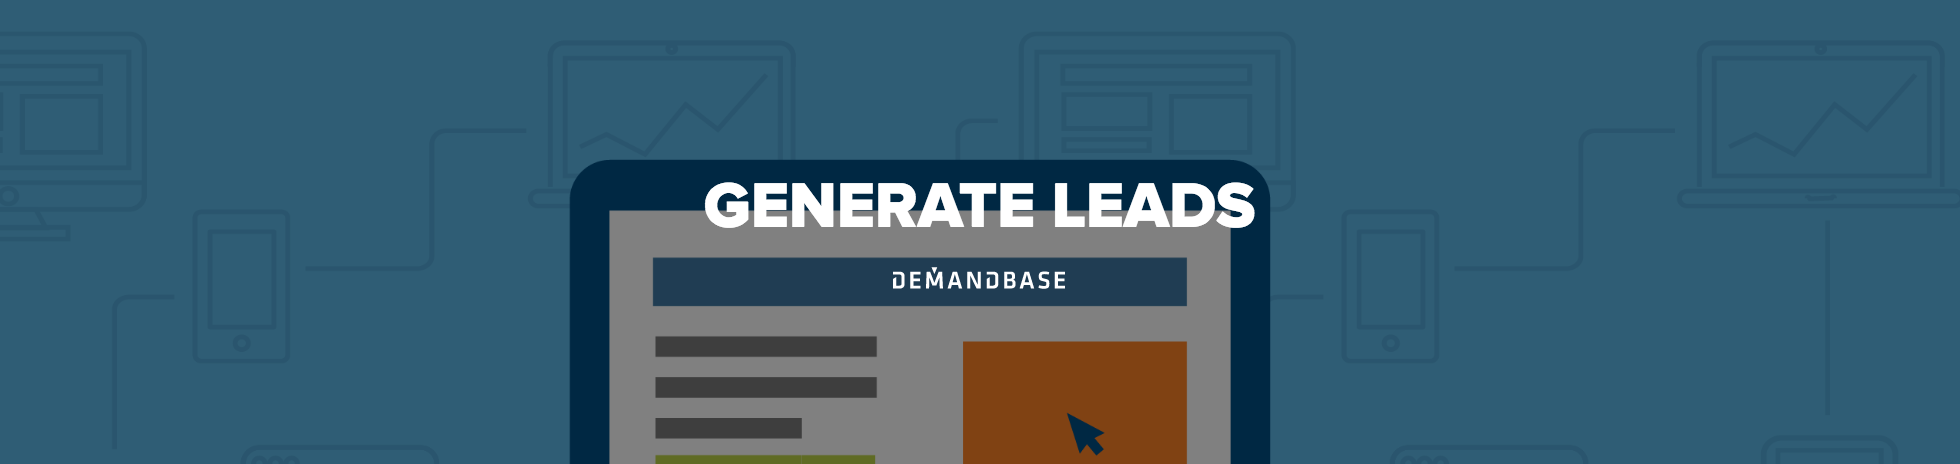 Generate Leads with Demandbase